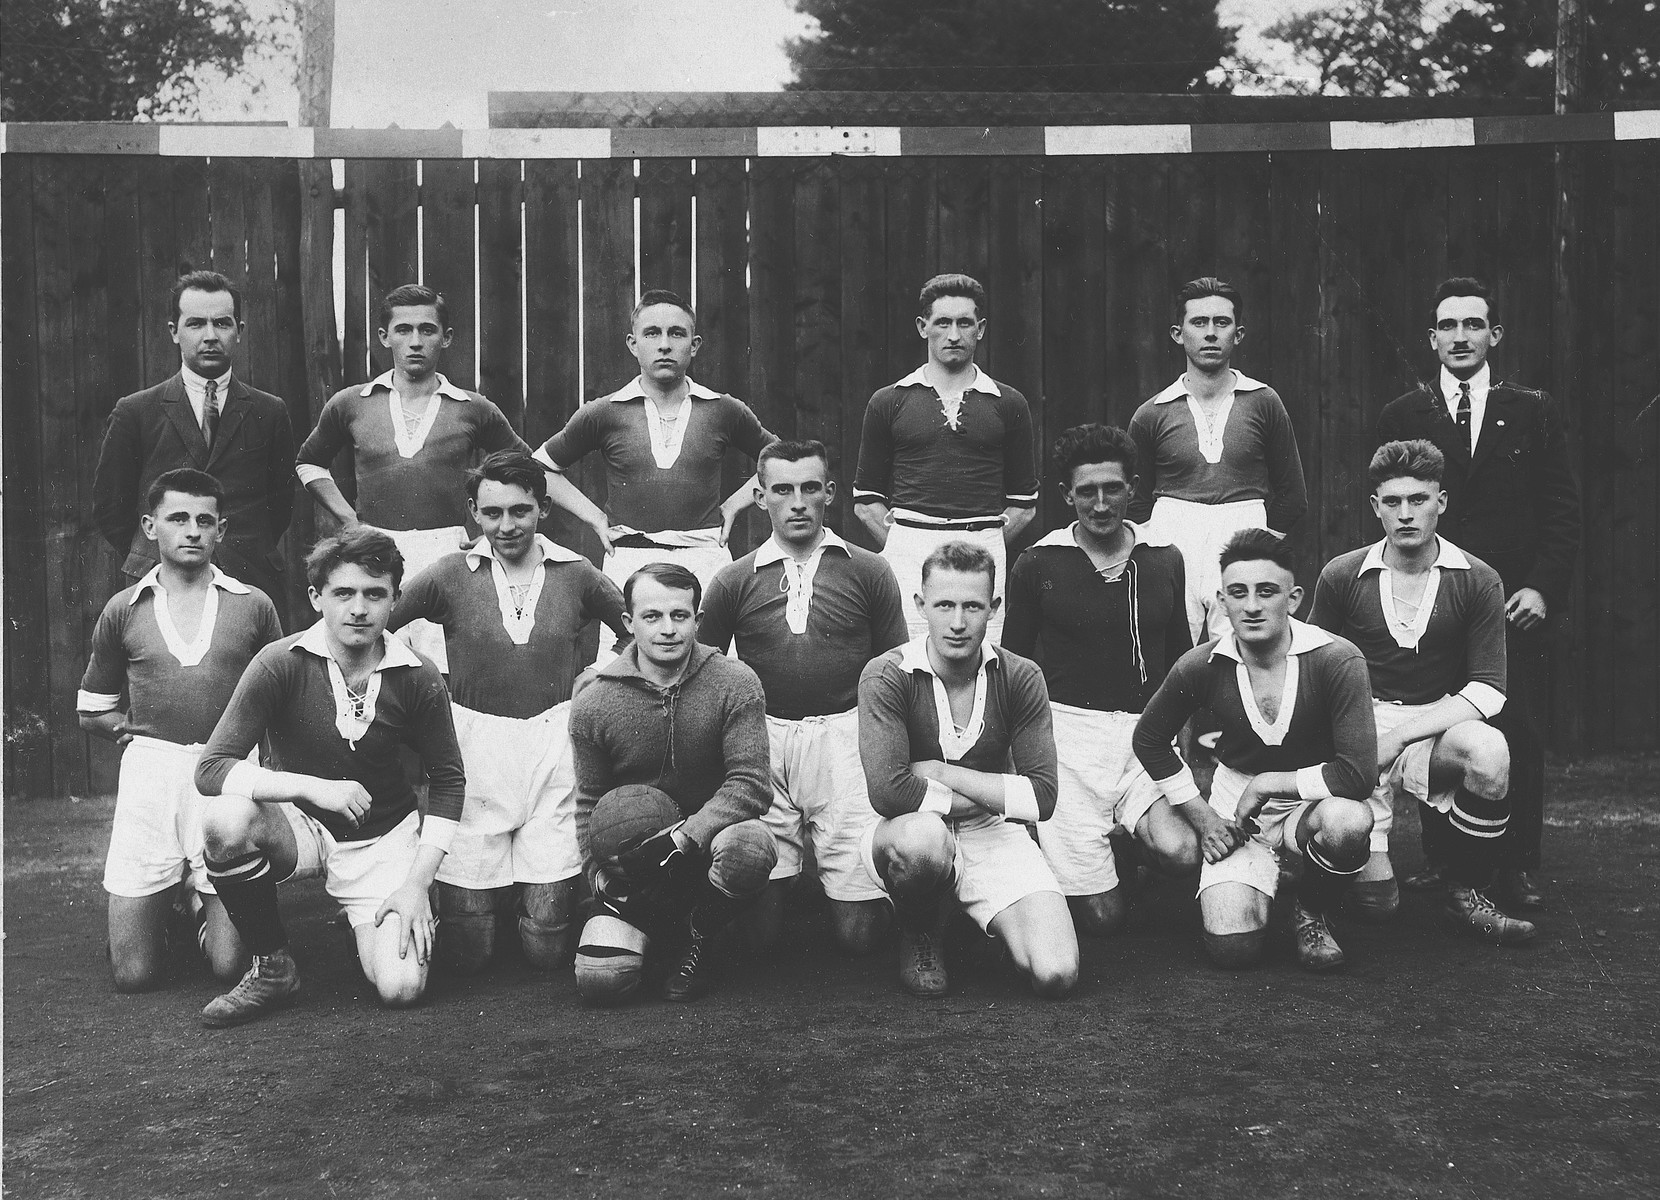 """Group portrait of members of the """"Red Boys"""" soccer team in Differdange, Luxembourg.  Among those pictured is Rene Nussbaum, who became a member of the Luxembourg national soccer team."""